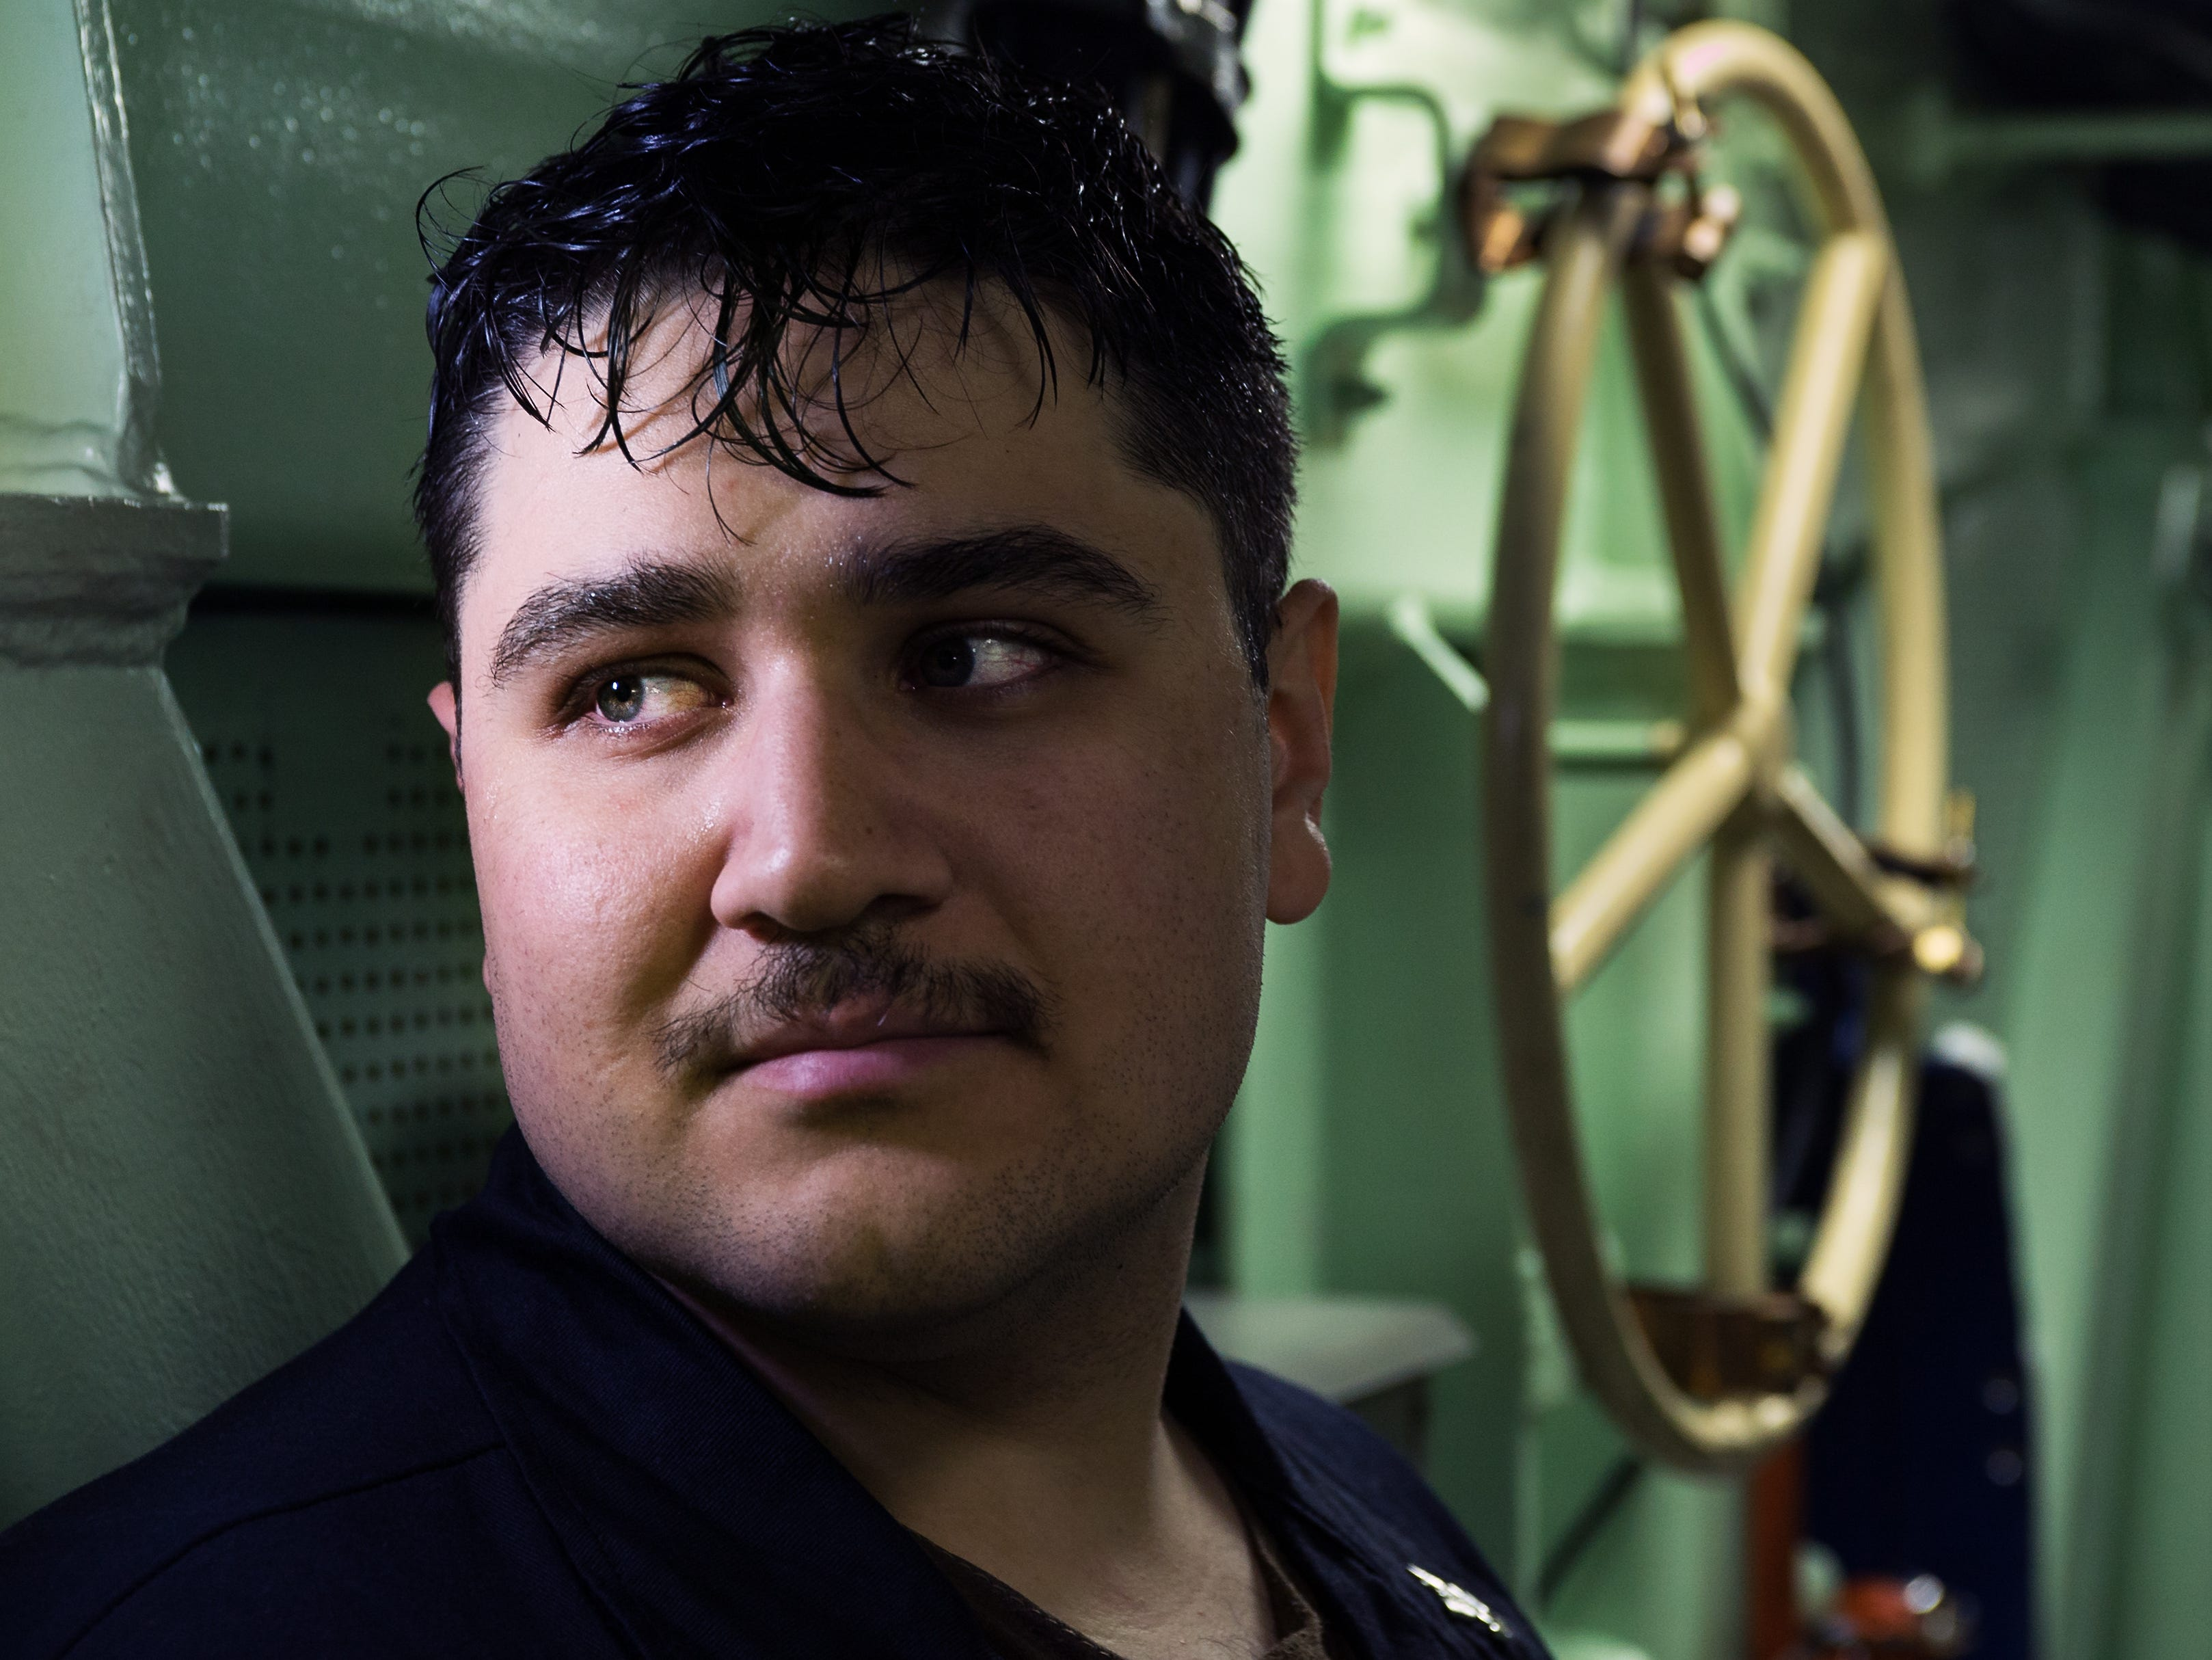 U.S. Navy Petty Officer 2nd Class Antonio Espinales, a Pre-commissioned Unit (PCU) South Dakota submariner, looks down a hallway during after a long shift during an underway somewhere in the Atlantic Ocean Nov 27.